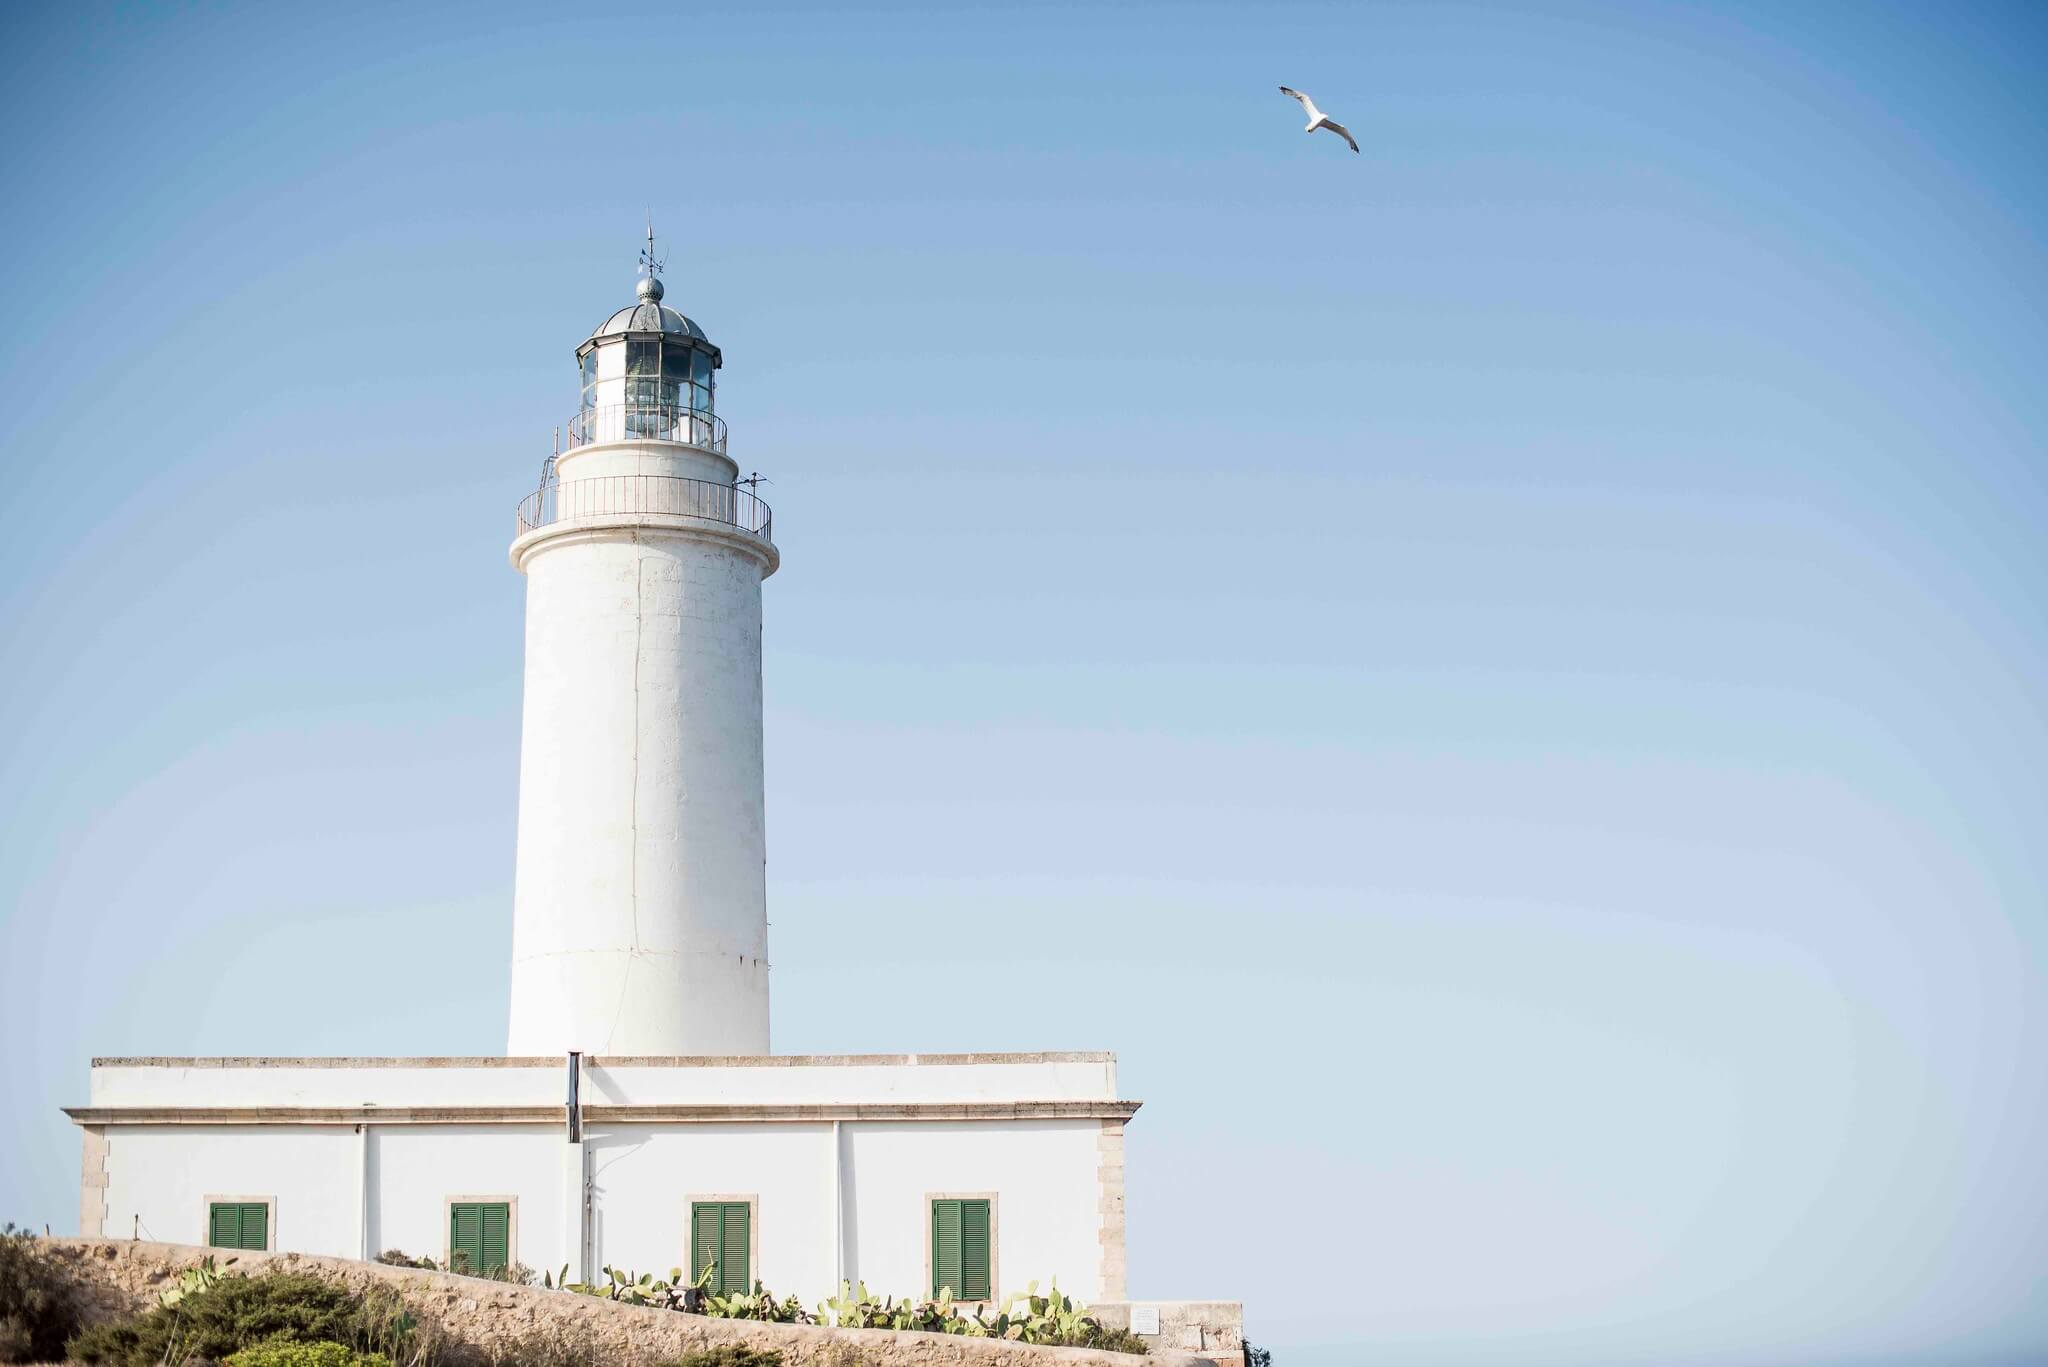 https://www.white-ibiza.com/wp-content/uploads/2020/03/formentera-lighthouses-2020-03.jpg